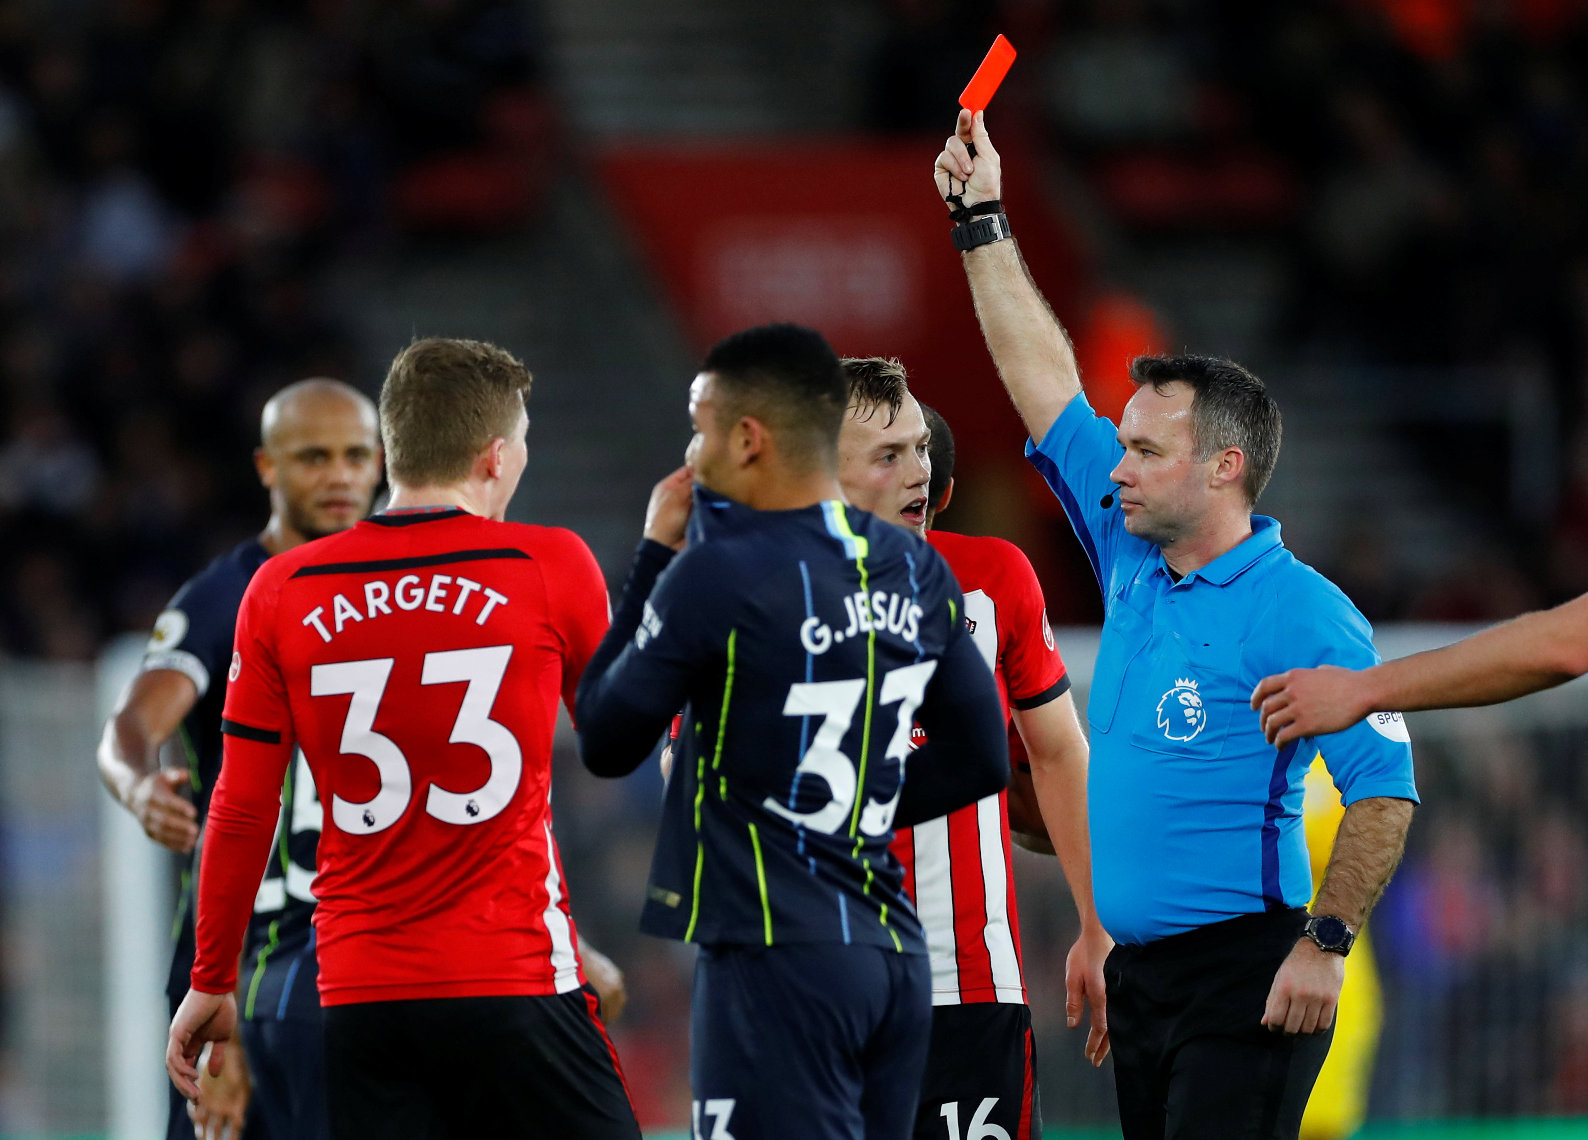 Soccer Football - Premier League - Southampton v Manchester City - St Mary's Stadium, Southampton, Britain - December 30, 2018  Southampton's Pierre-Emile Hojbjerg (not pictured) is shown a red card by referee Paul Tierney  REUTERS/Eddie Keogh  EDITORIAL USE ONLY. No use with unauthorized audio, video, data, fixture lists, club/league logos or